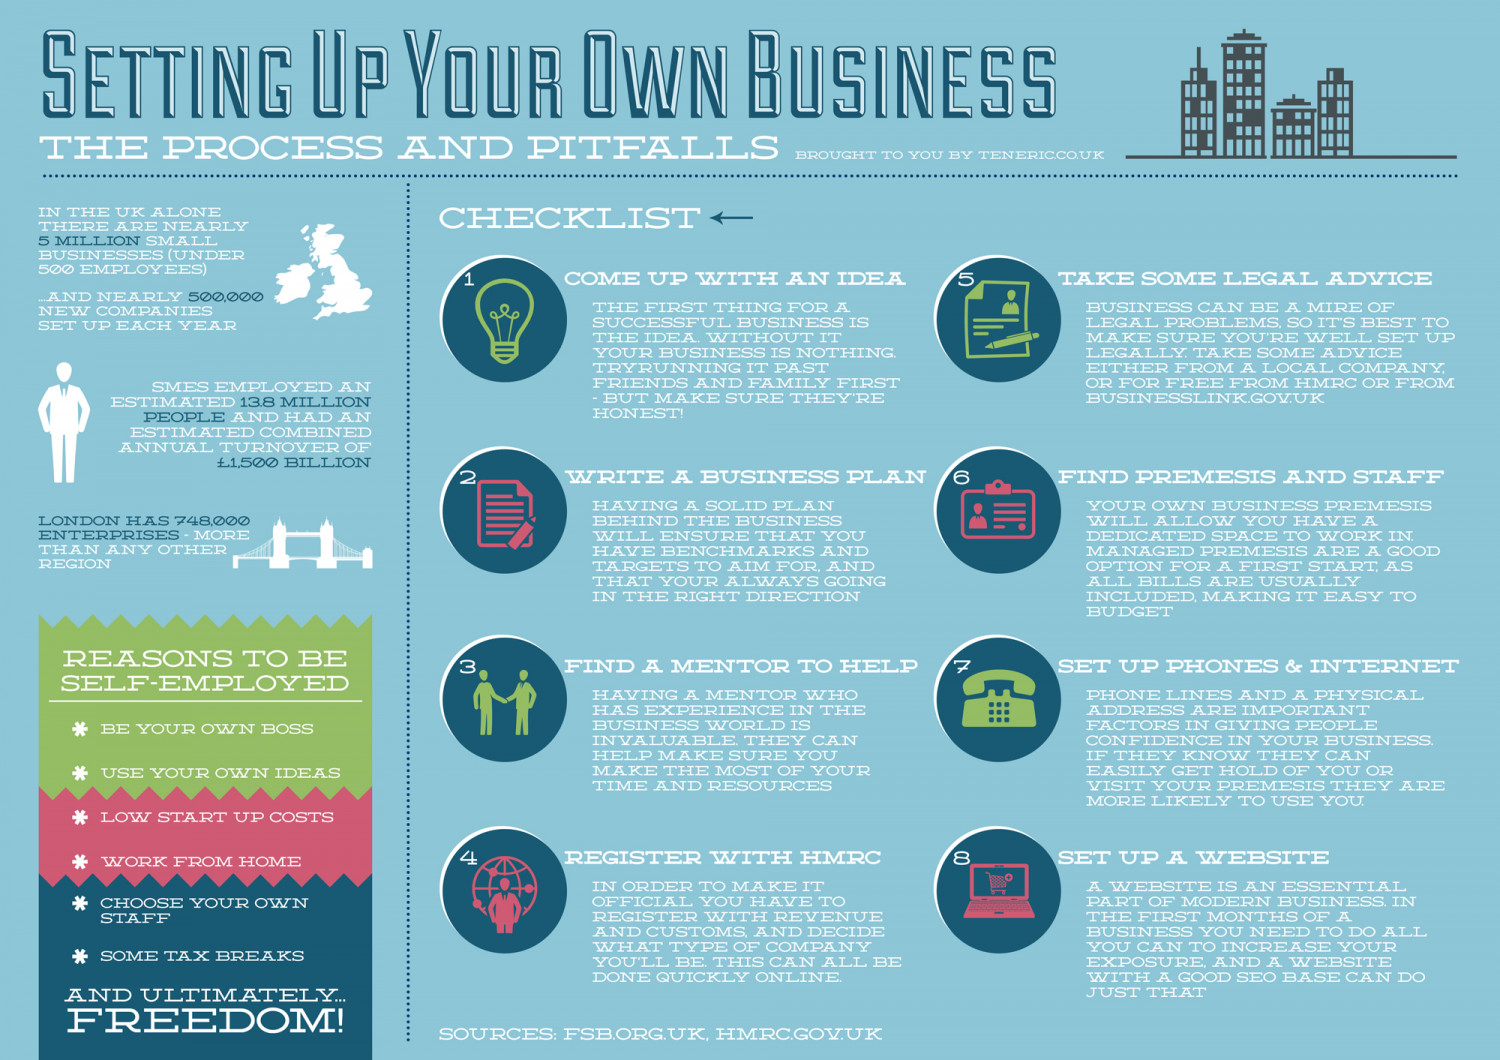 Setting Up Your Own Business - The Process And Pitfalls Infographic